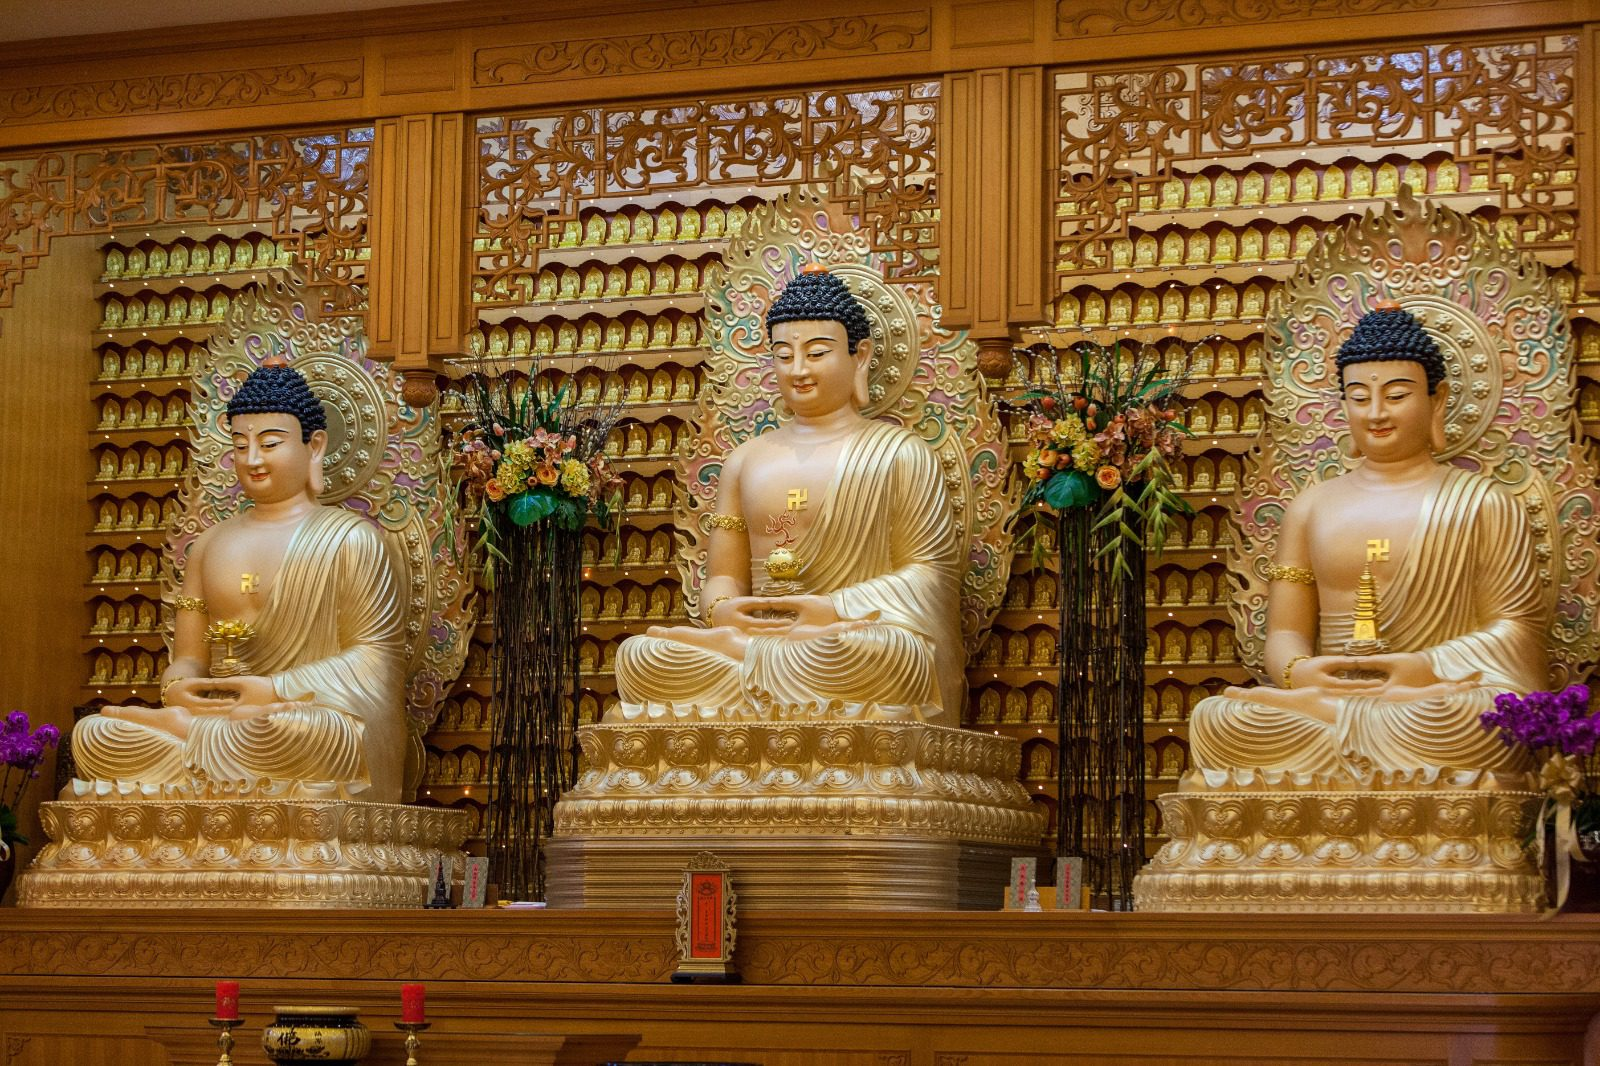 Buddhas in the Main Shrine